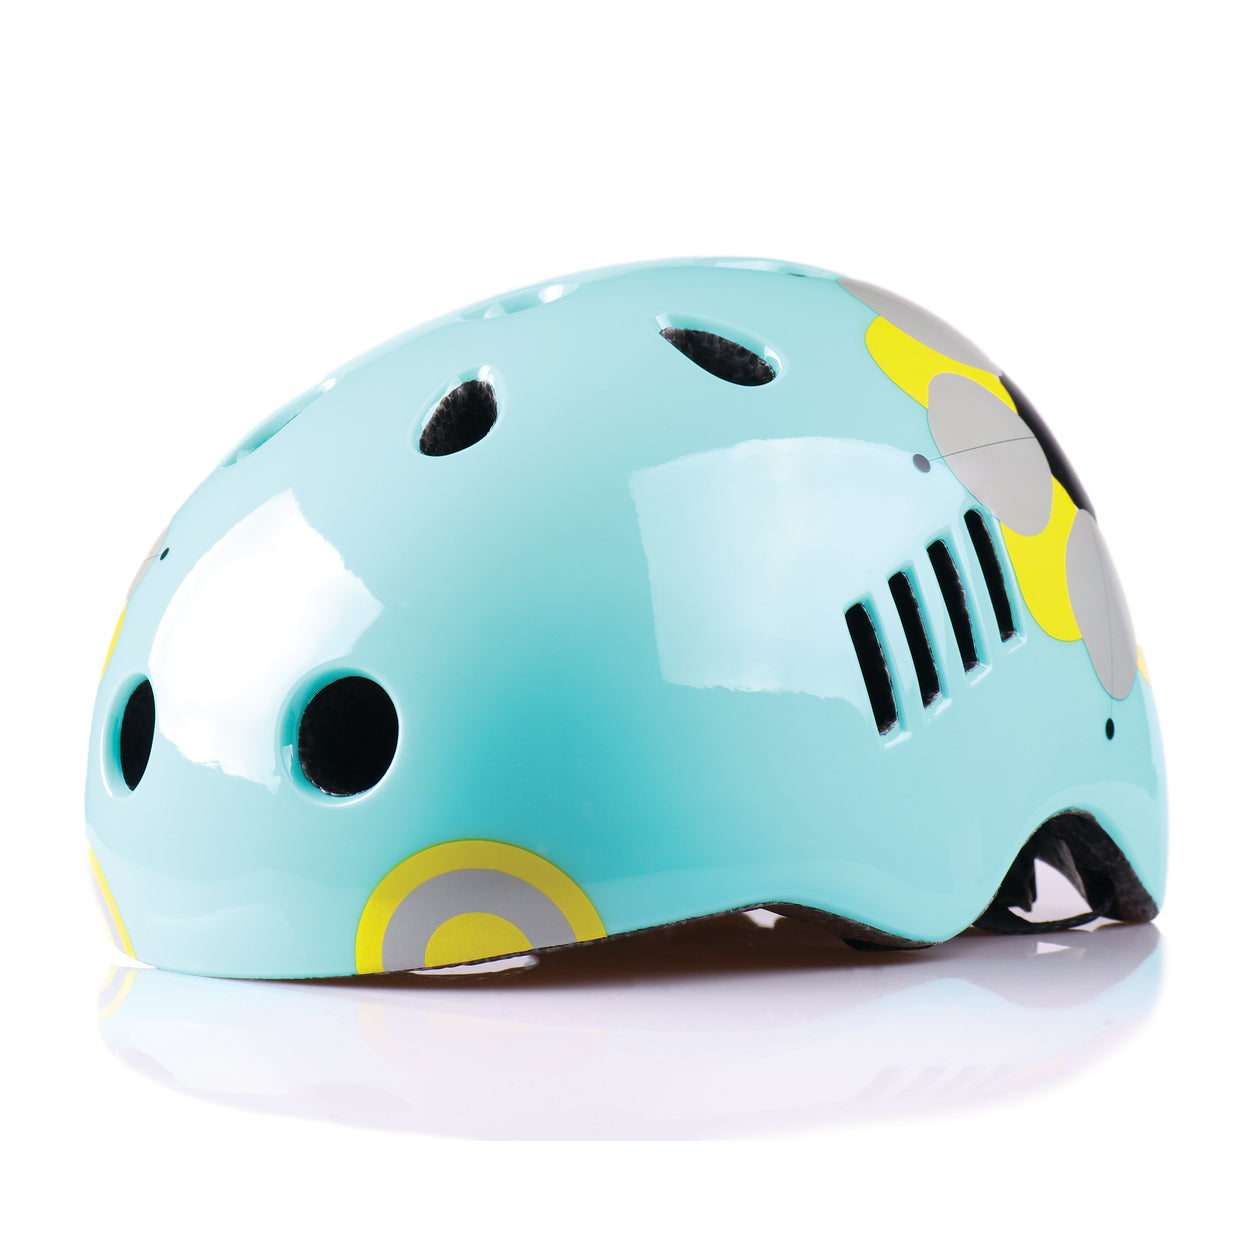 Kids bike helmet with boho chic design front view